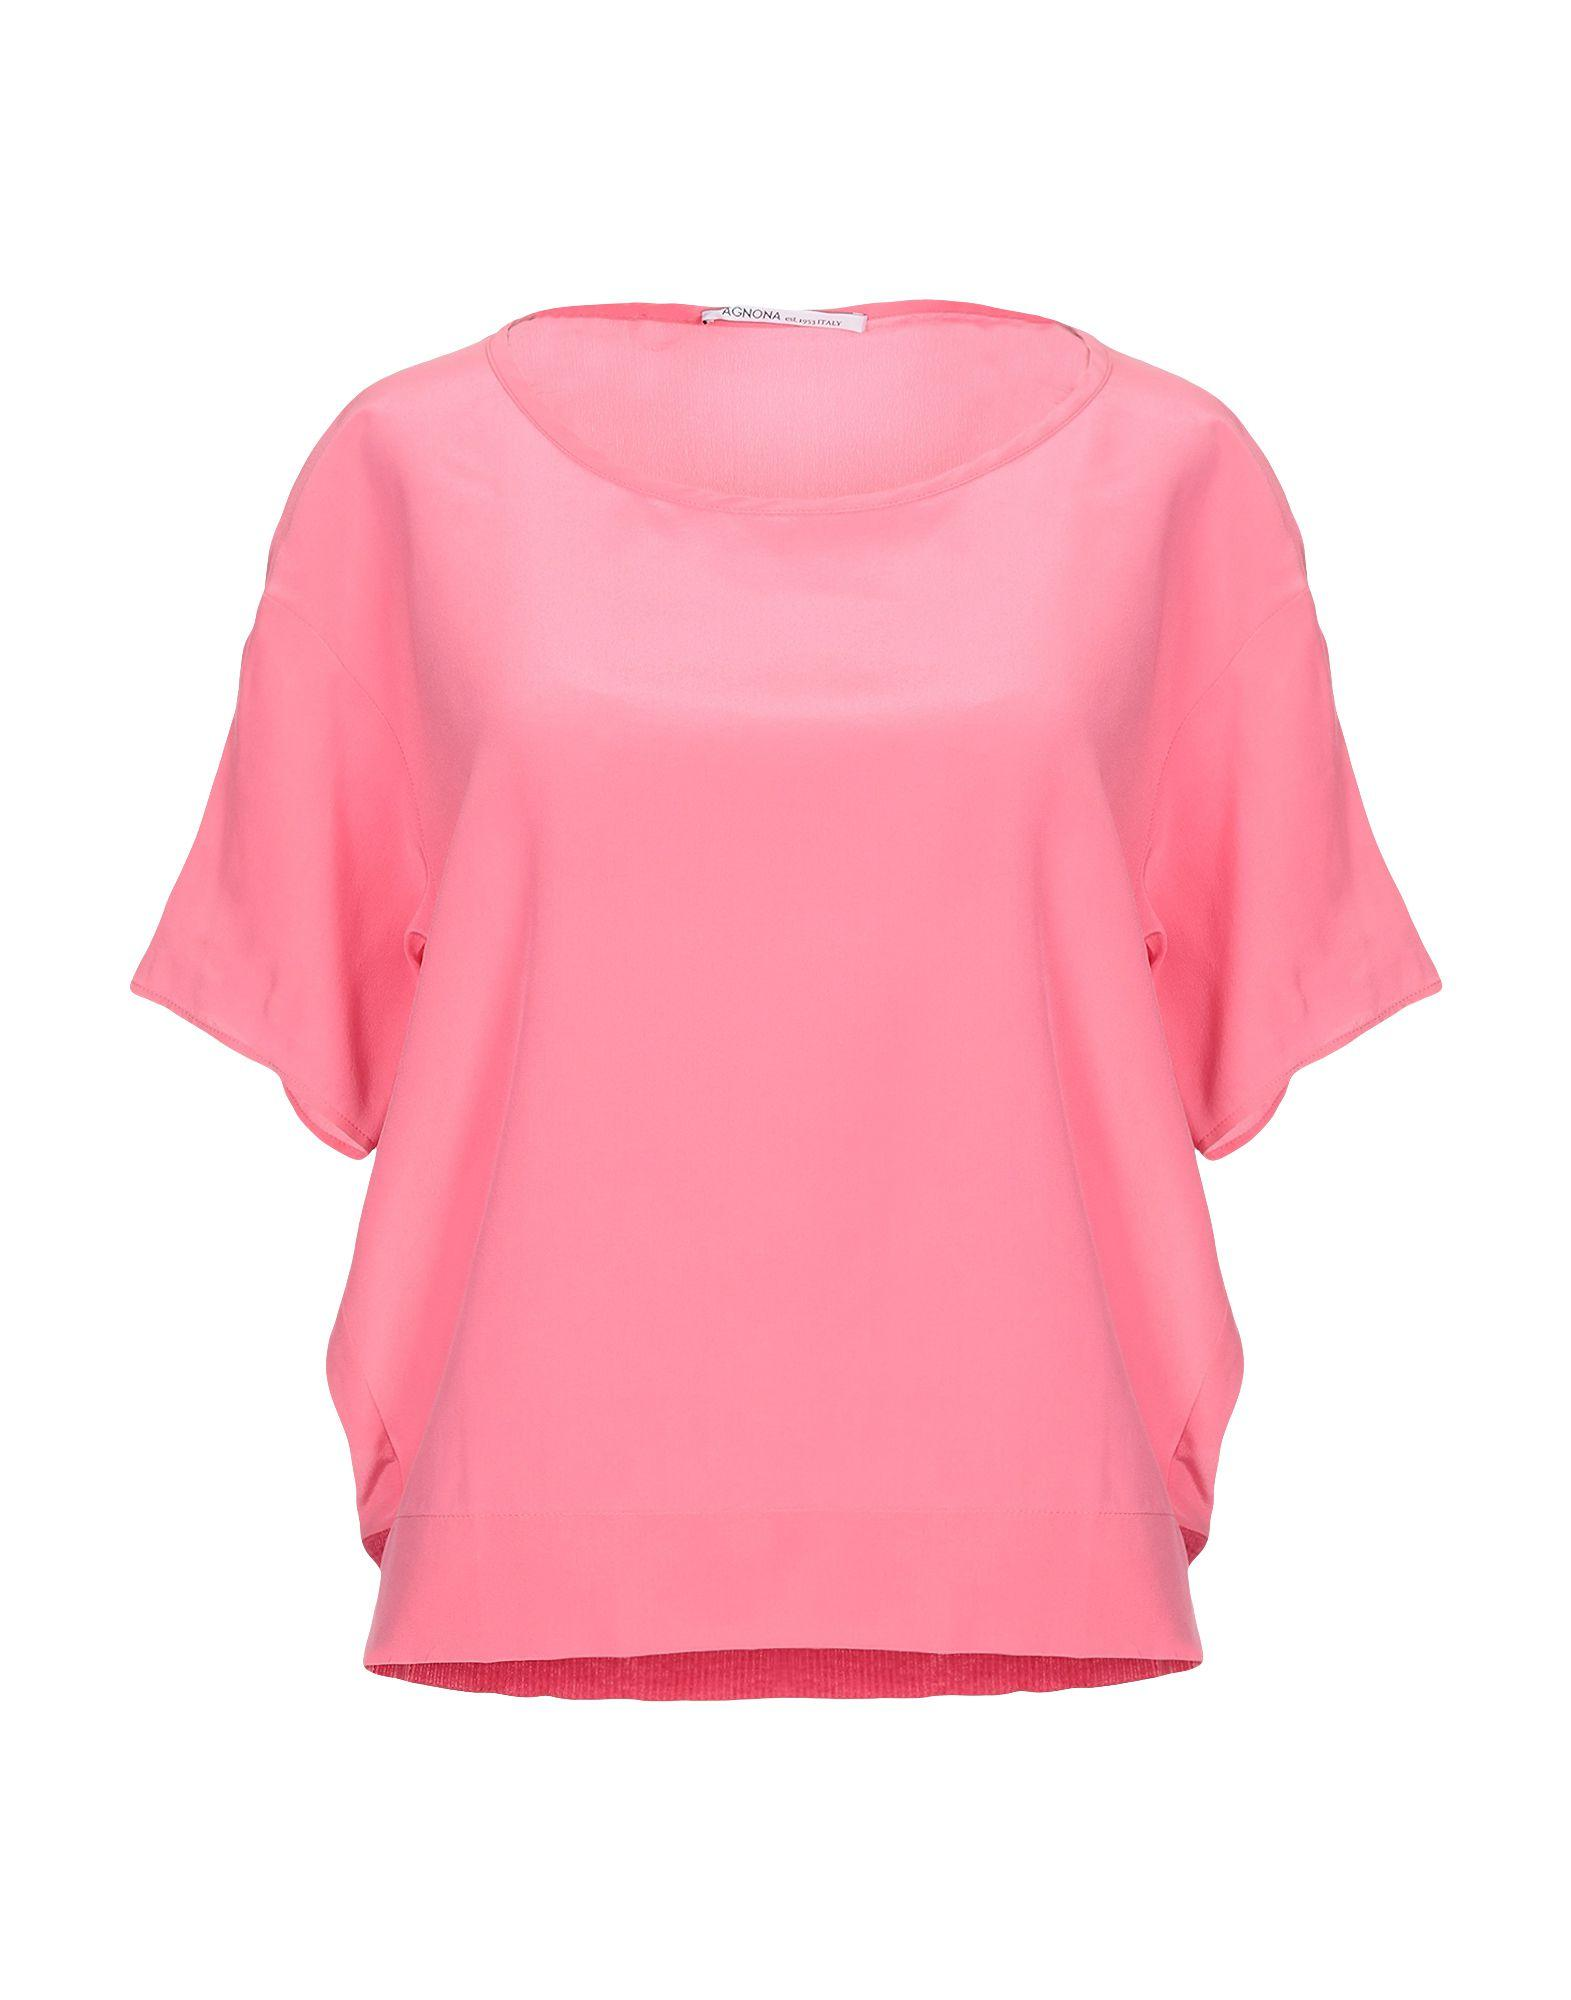 info for 6d6a2 0982b Lyst - Agnona Blouse in Pink